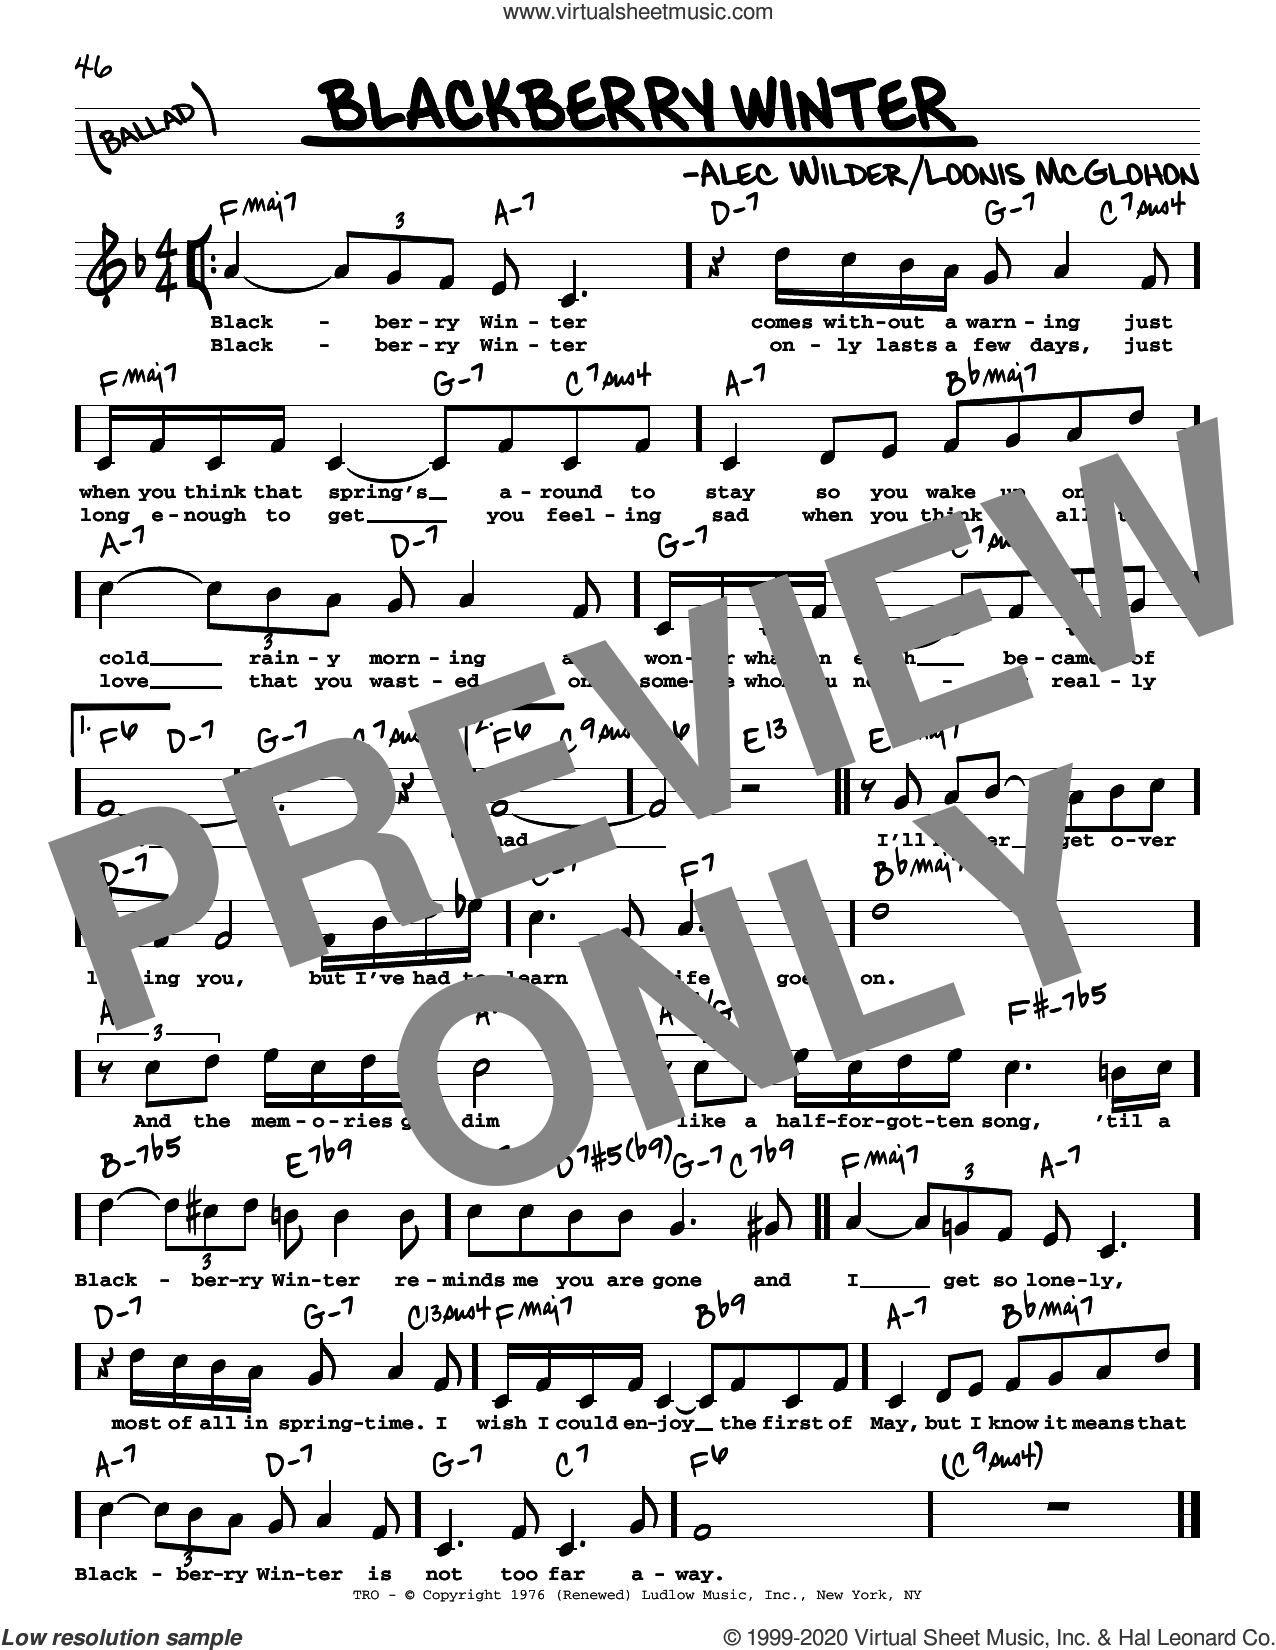 Blackberry Winter (High Voice) sheet music for voice and other instruments (real book with lyrics) by Alec Wilder and Loonis McGlohon, intermediate skill level